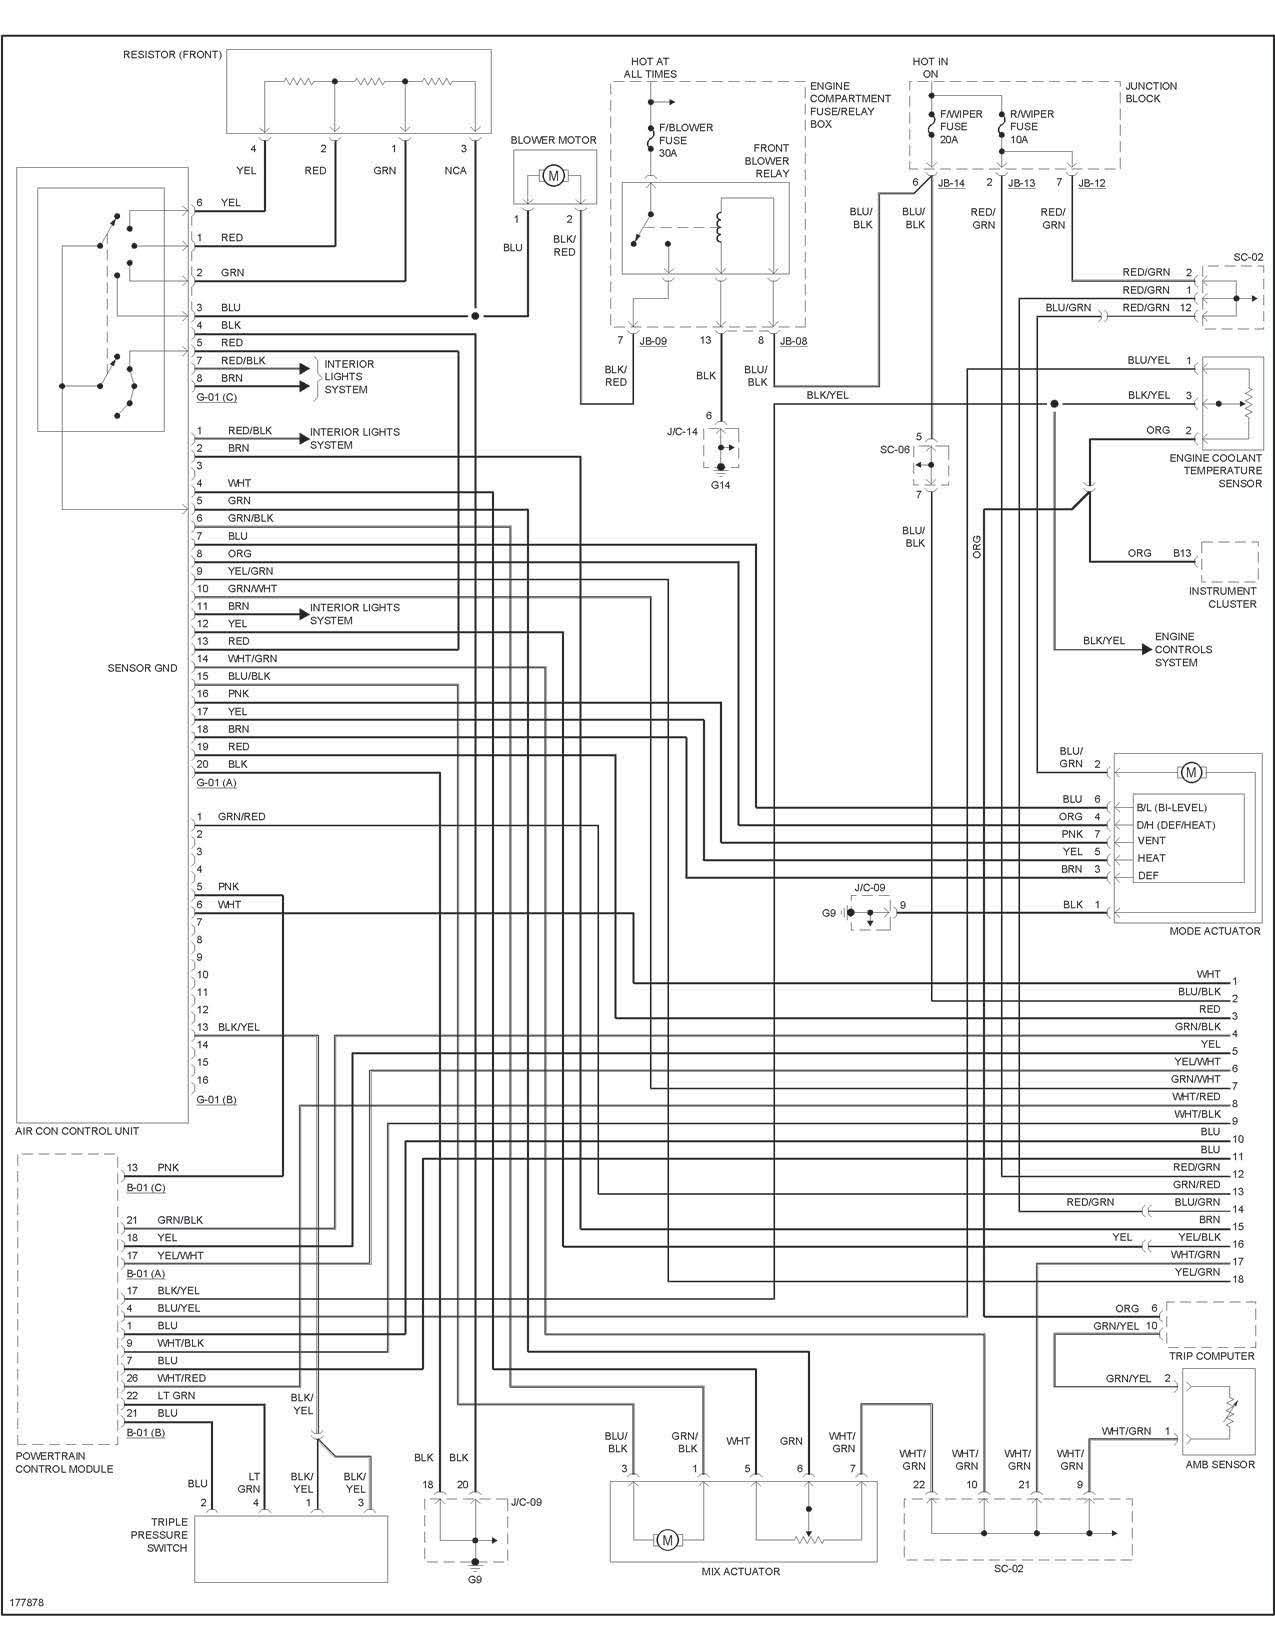 kia rio radio wiring diagram on wiring diagram for 2011 kia sorento rh  plasmapen co 2002 Kia Sportage Cooling System Diagram 2001 Kia Sportage  Vacuum ...